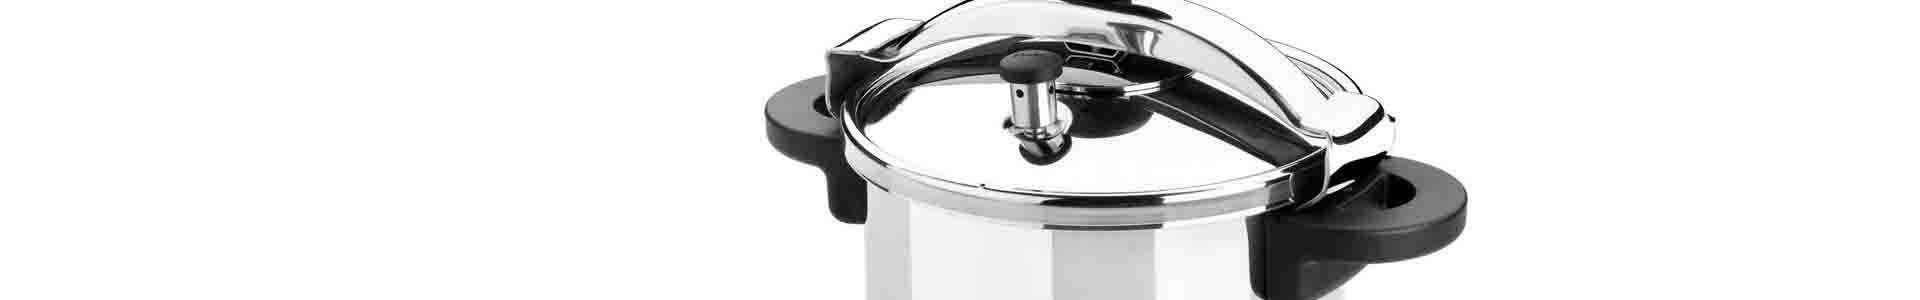 Spare parts for pressure cookers,